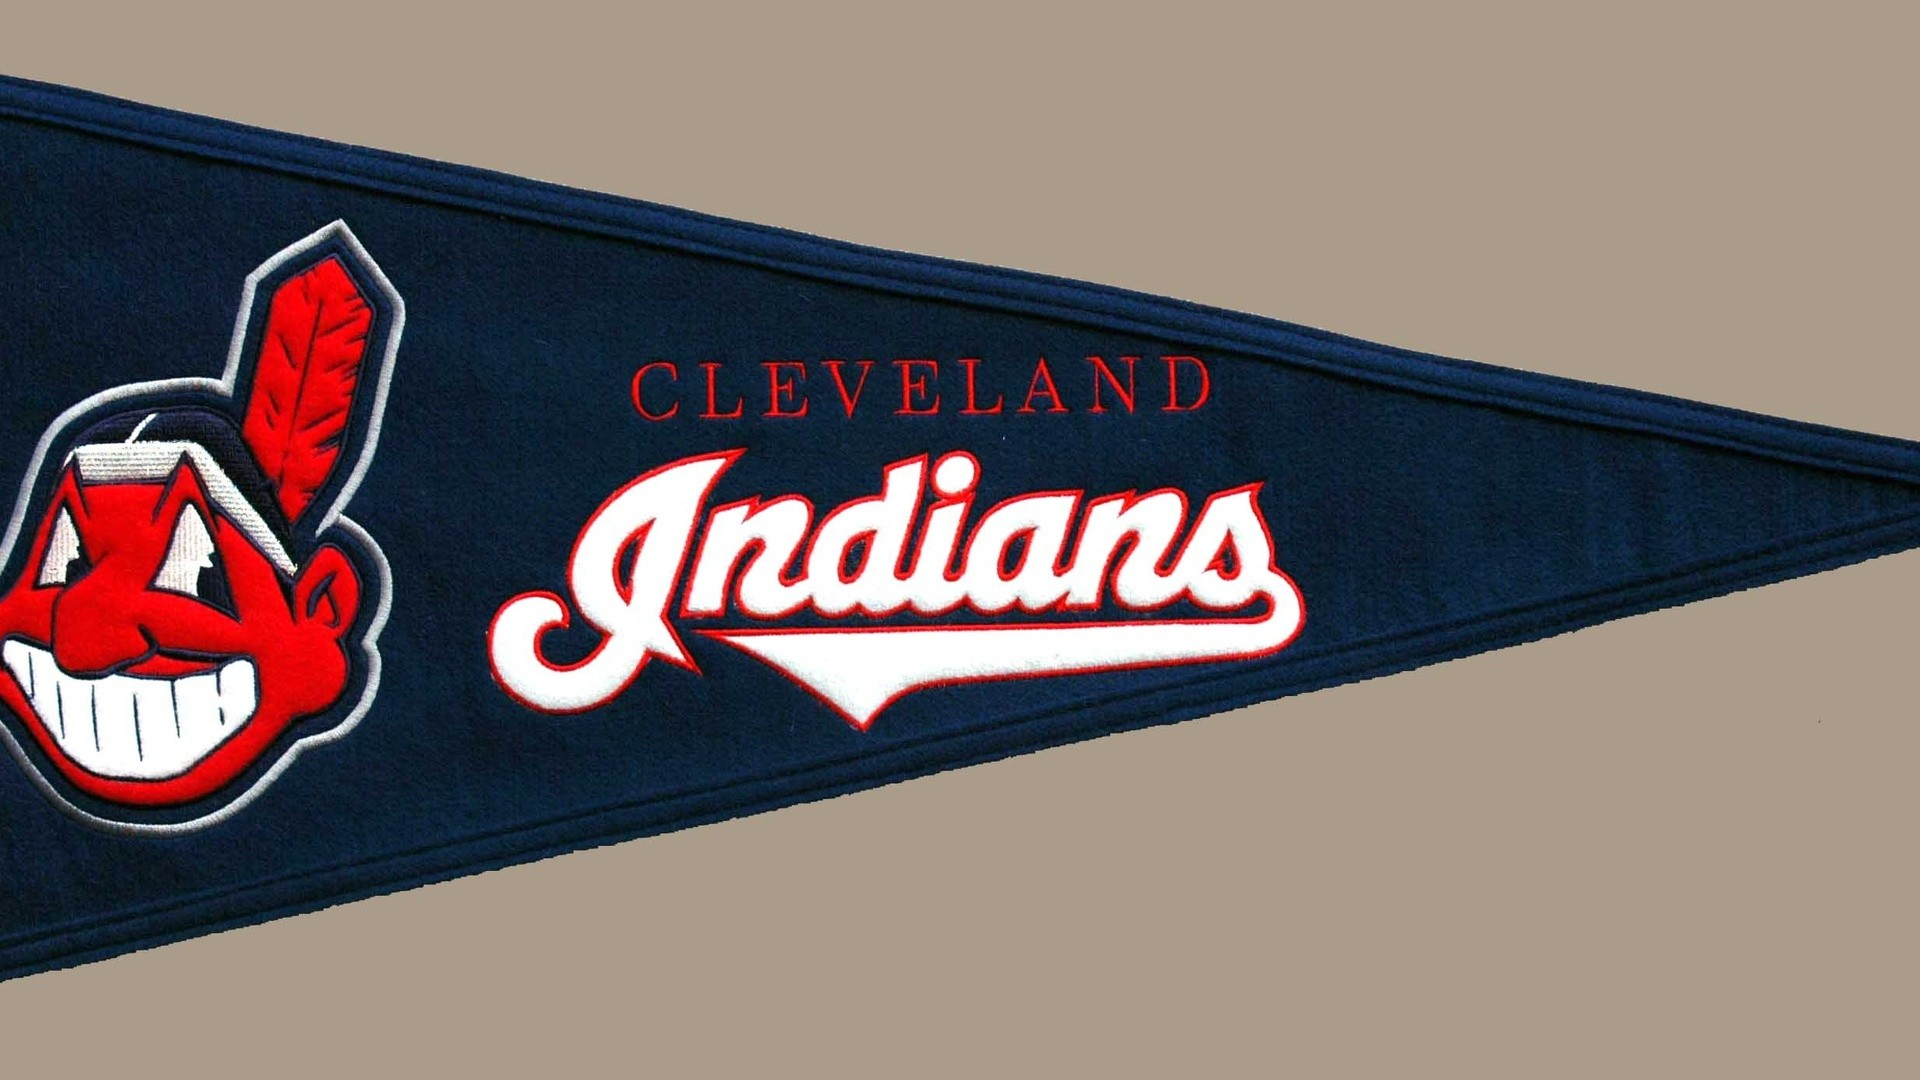 Cleveland Indians Traditions, Sports, Mlb ..